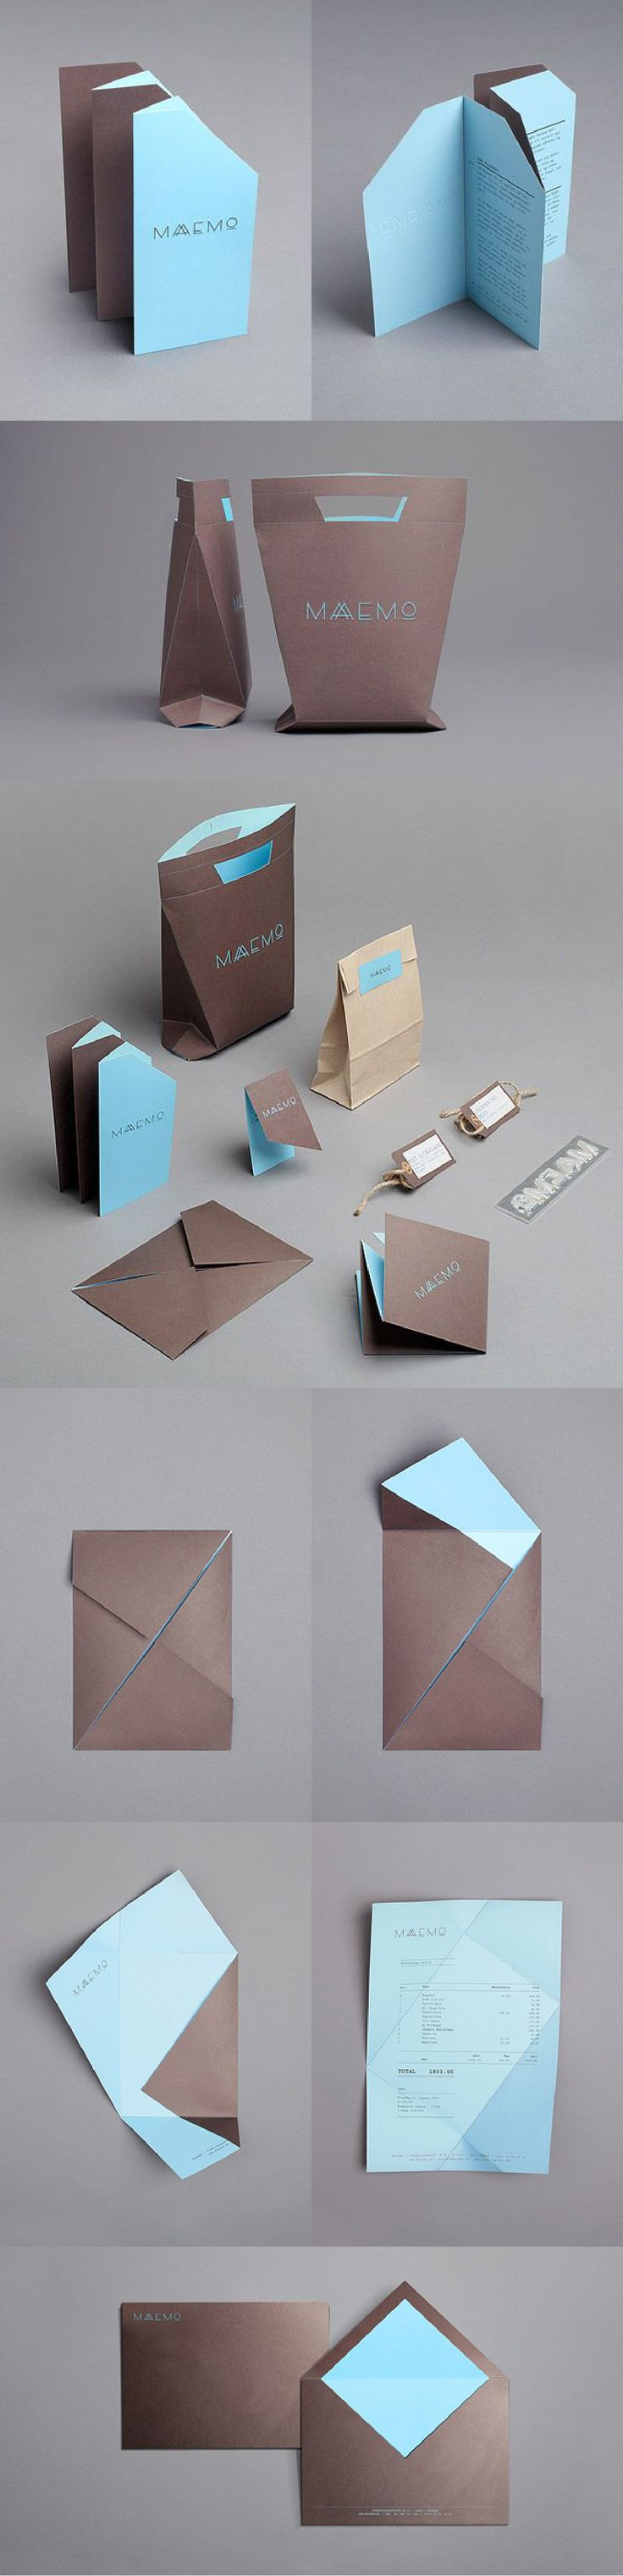 Maaemo Brand Identity_ designed by Work in Progress for the Norwegian restaurant, Maaemo  http://businesscarddesignideas.com/maaemos-cool-business-card-folding-geometric-brand-identity/